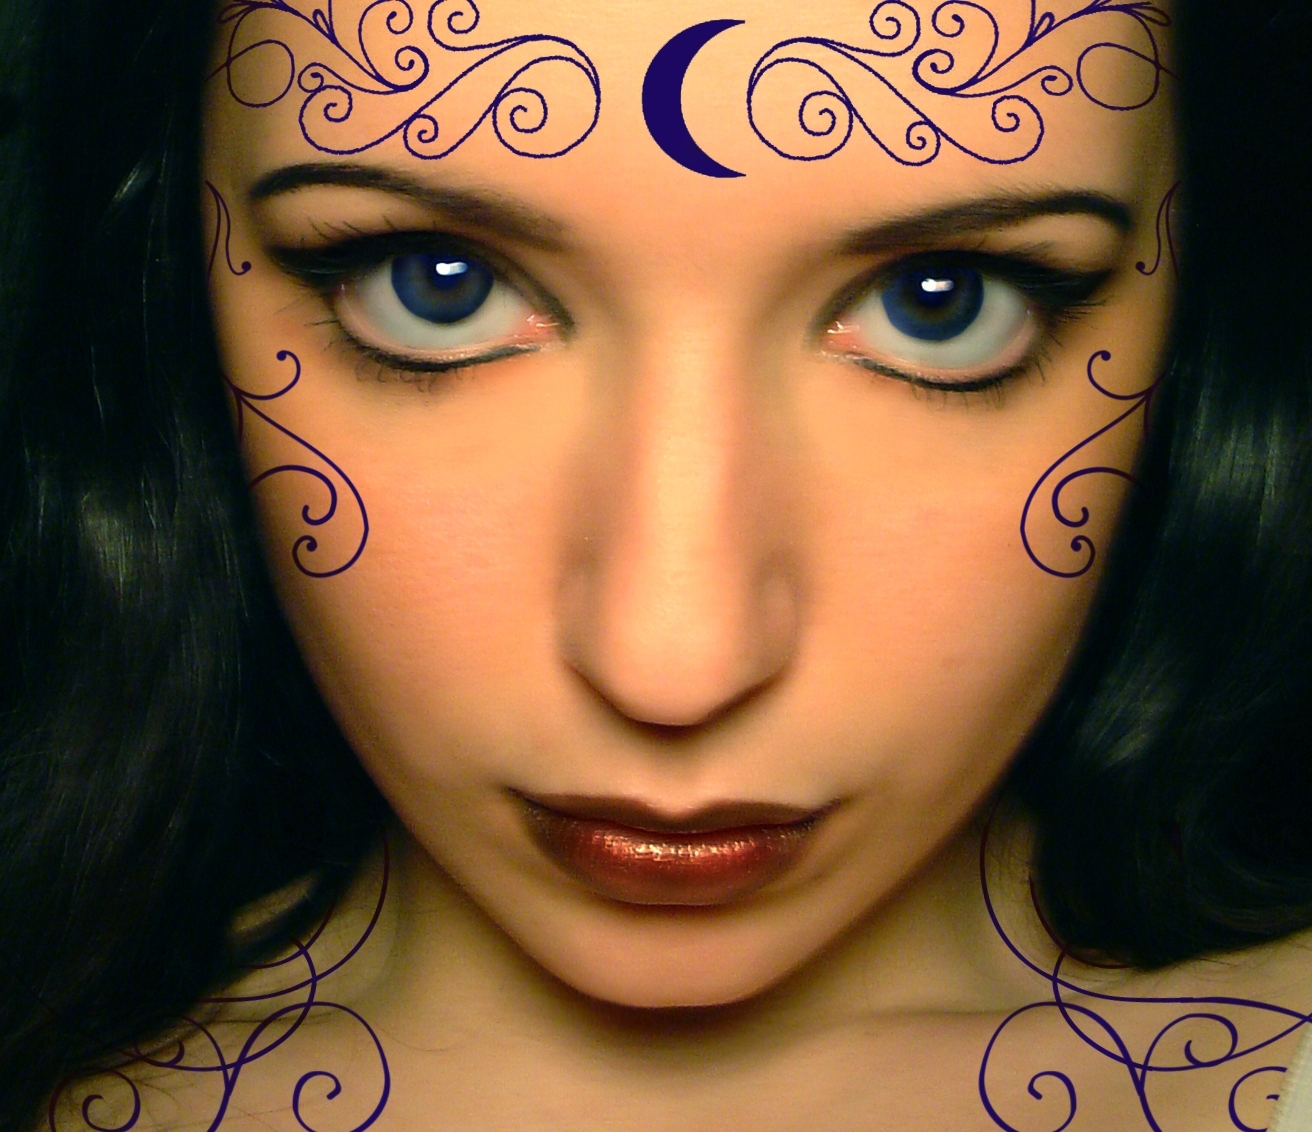 Zoey house of night series fan art 3468115 fanpop for Housse of night